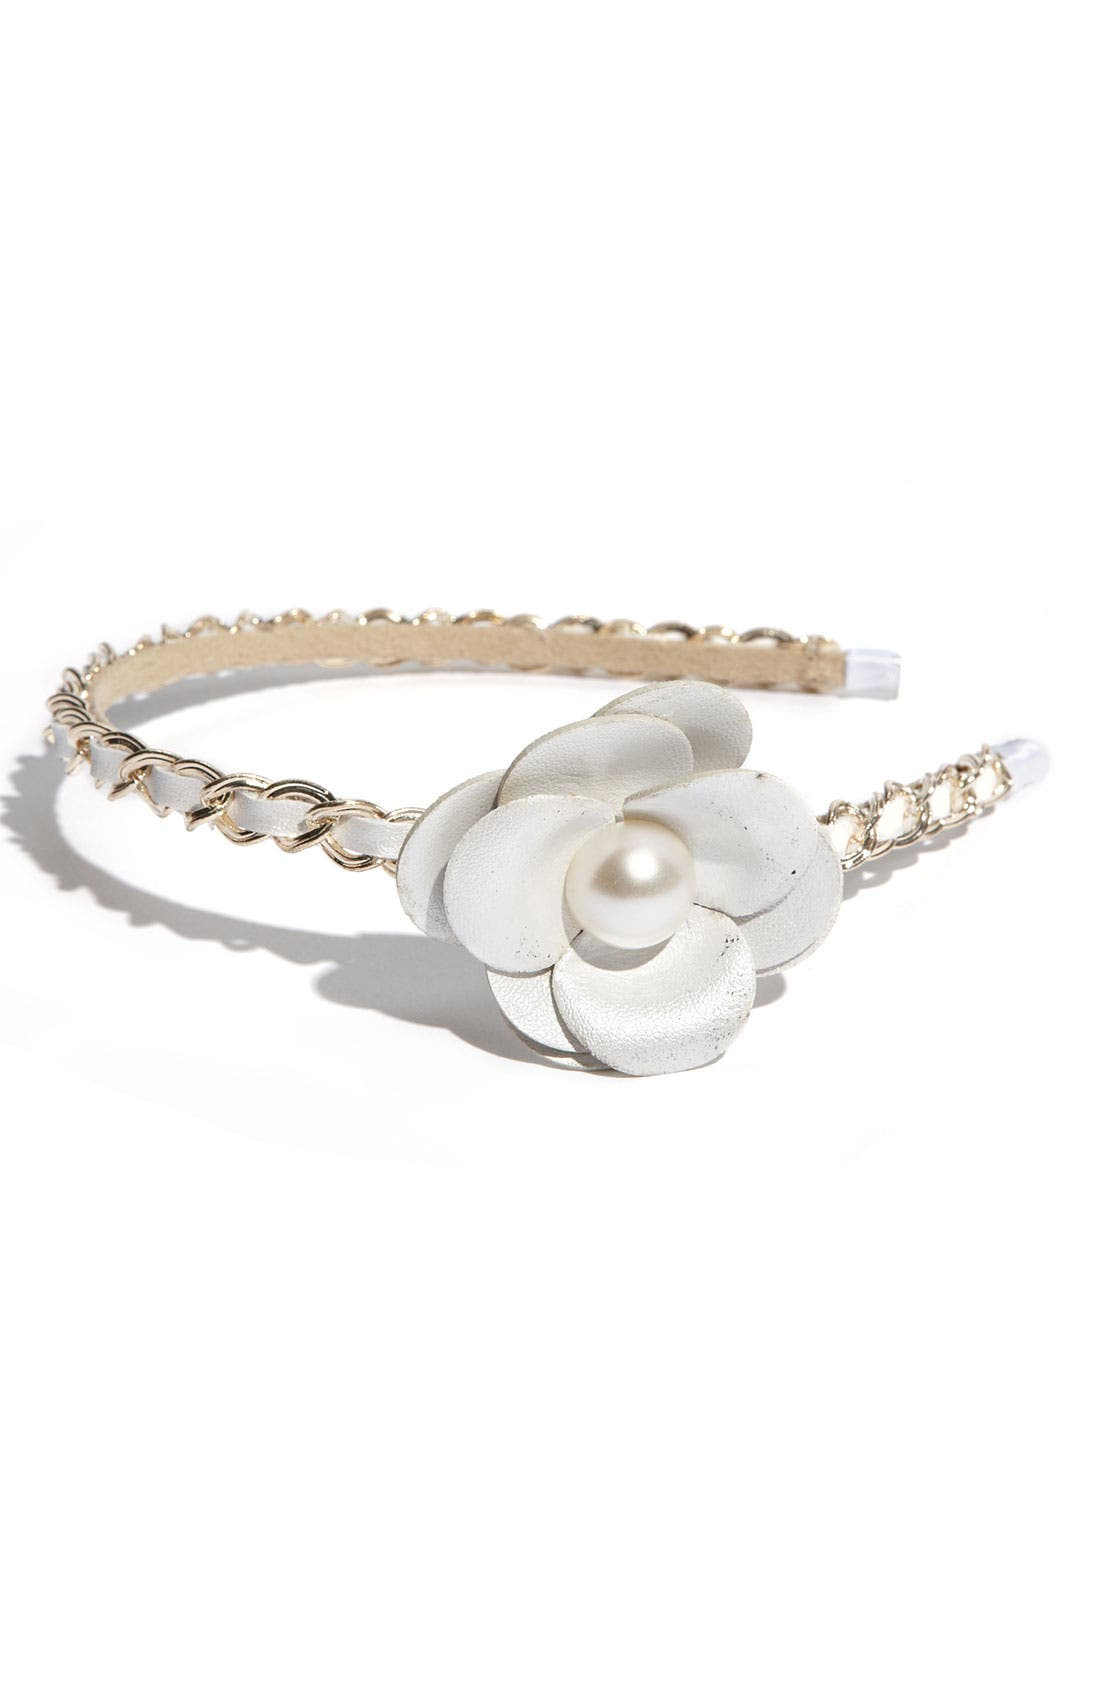 'Chic' Leather Flower Headband,                             Main thumbnail 2, color,